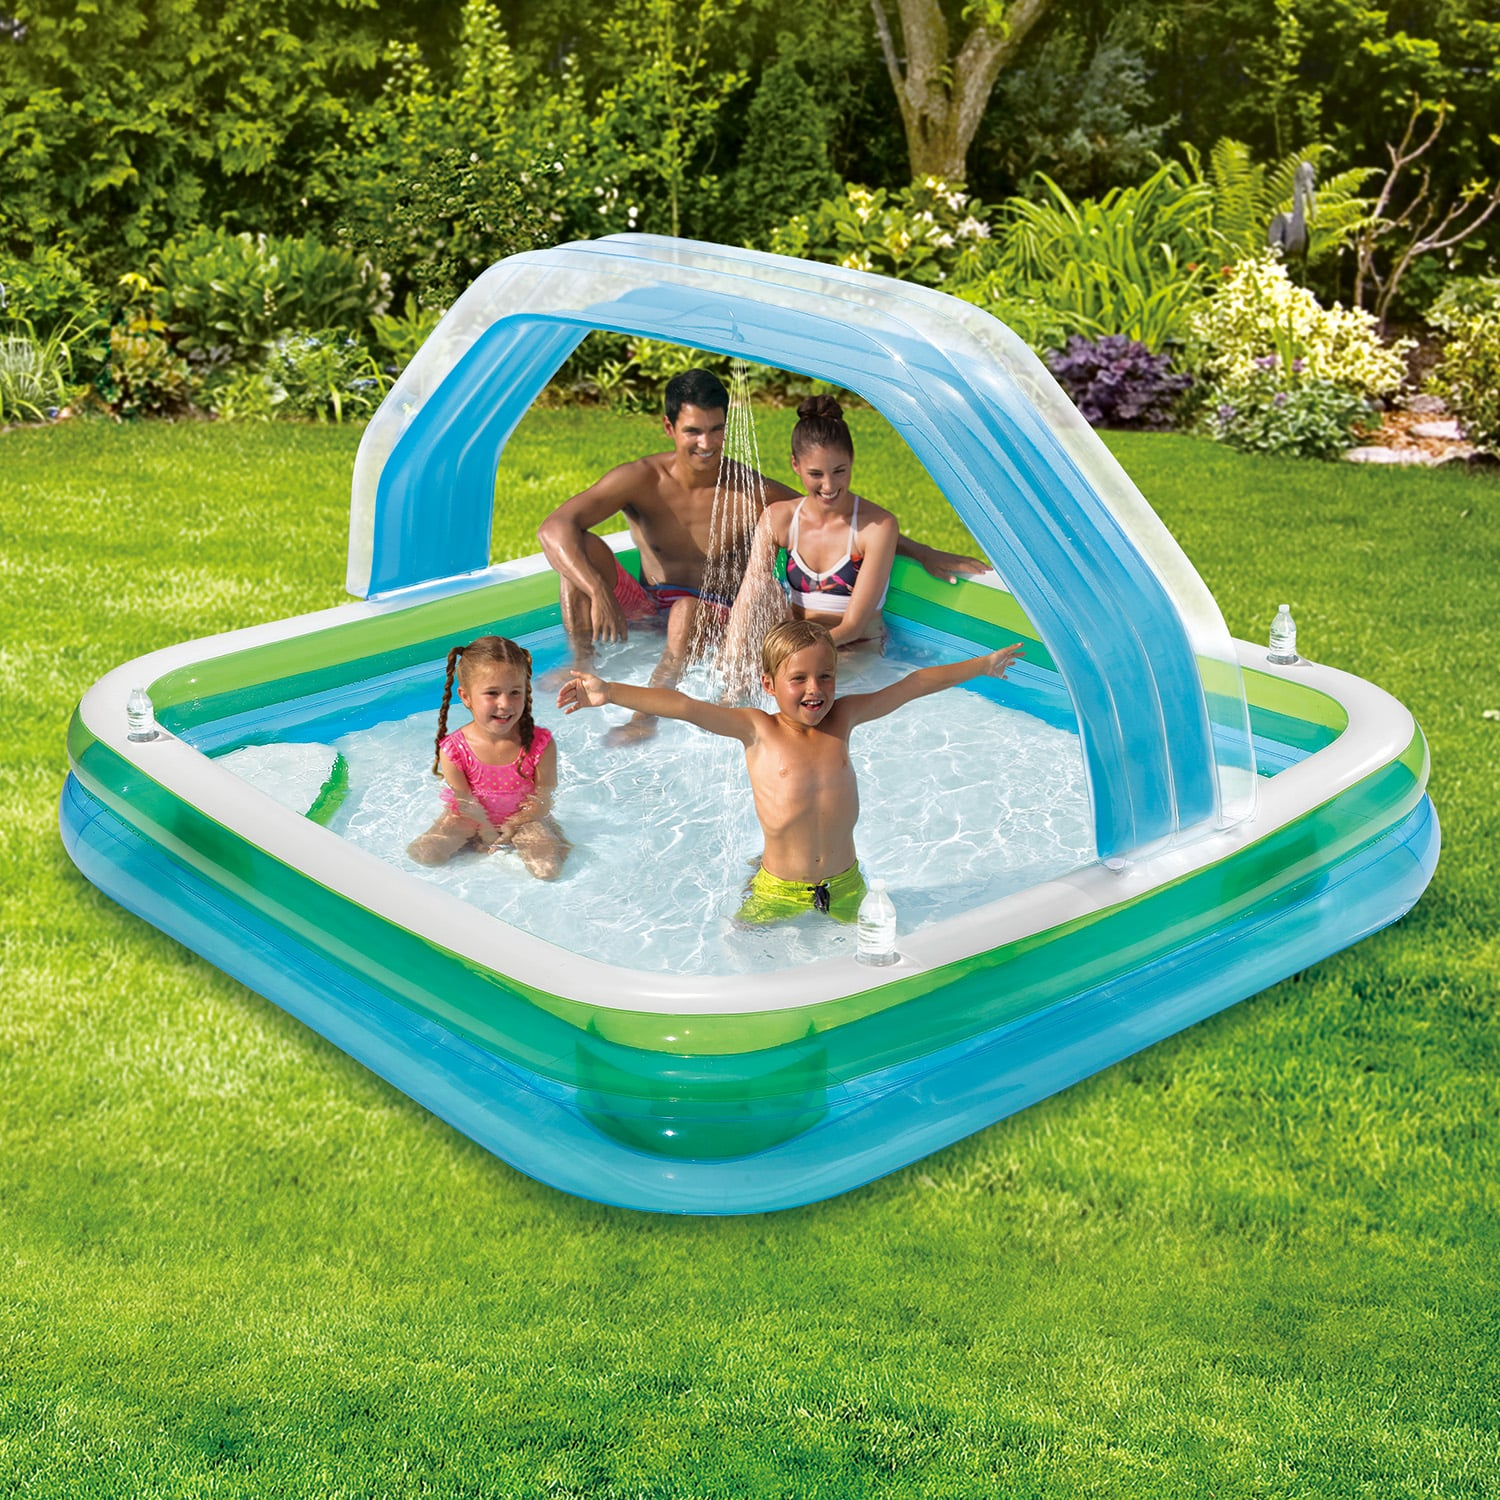 Summer Waves Square Inflatable Family Swimming Pool | Splish ...